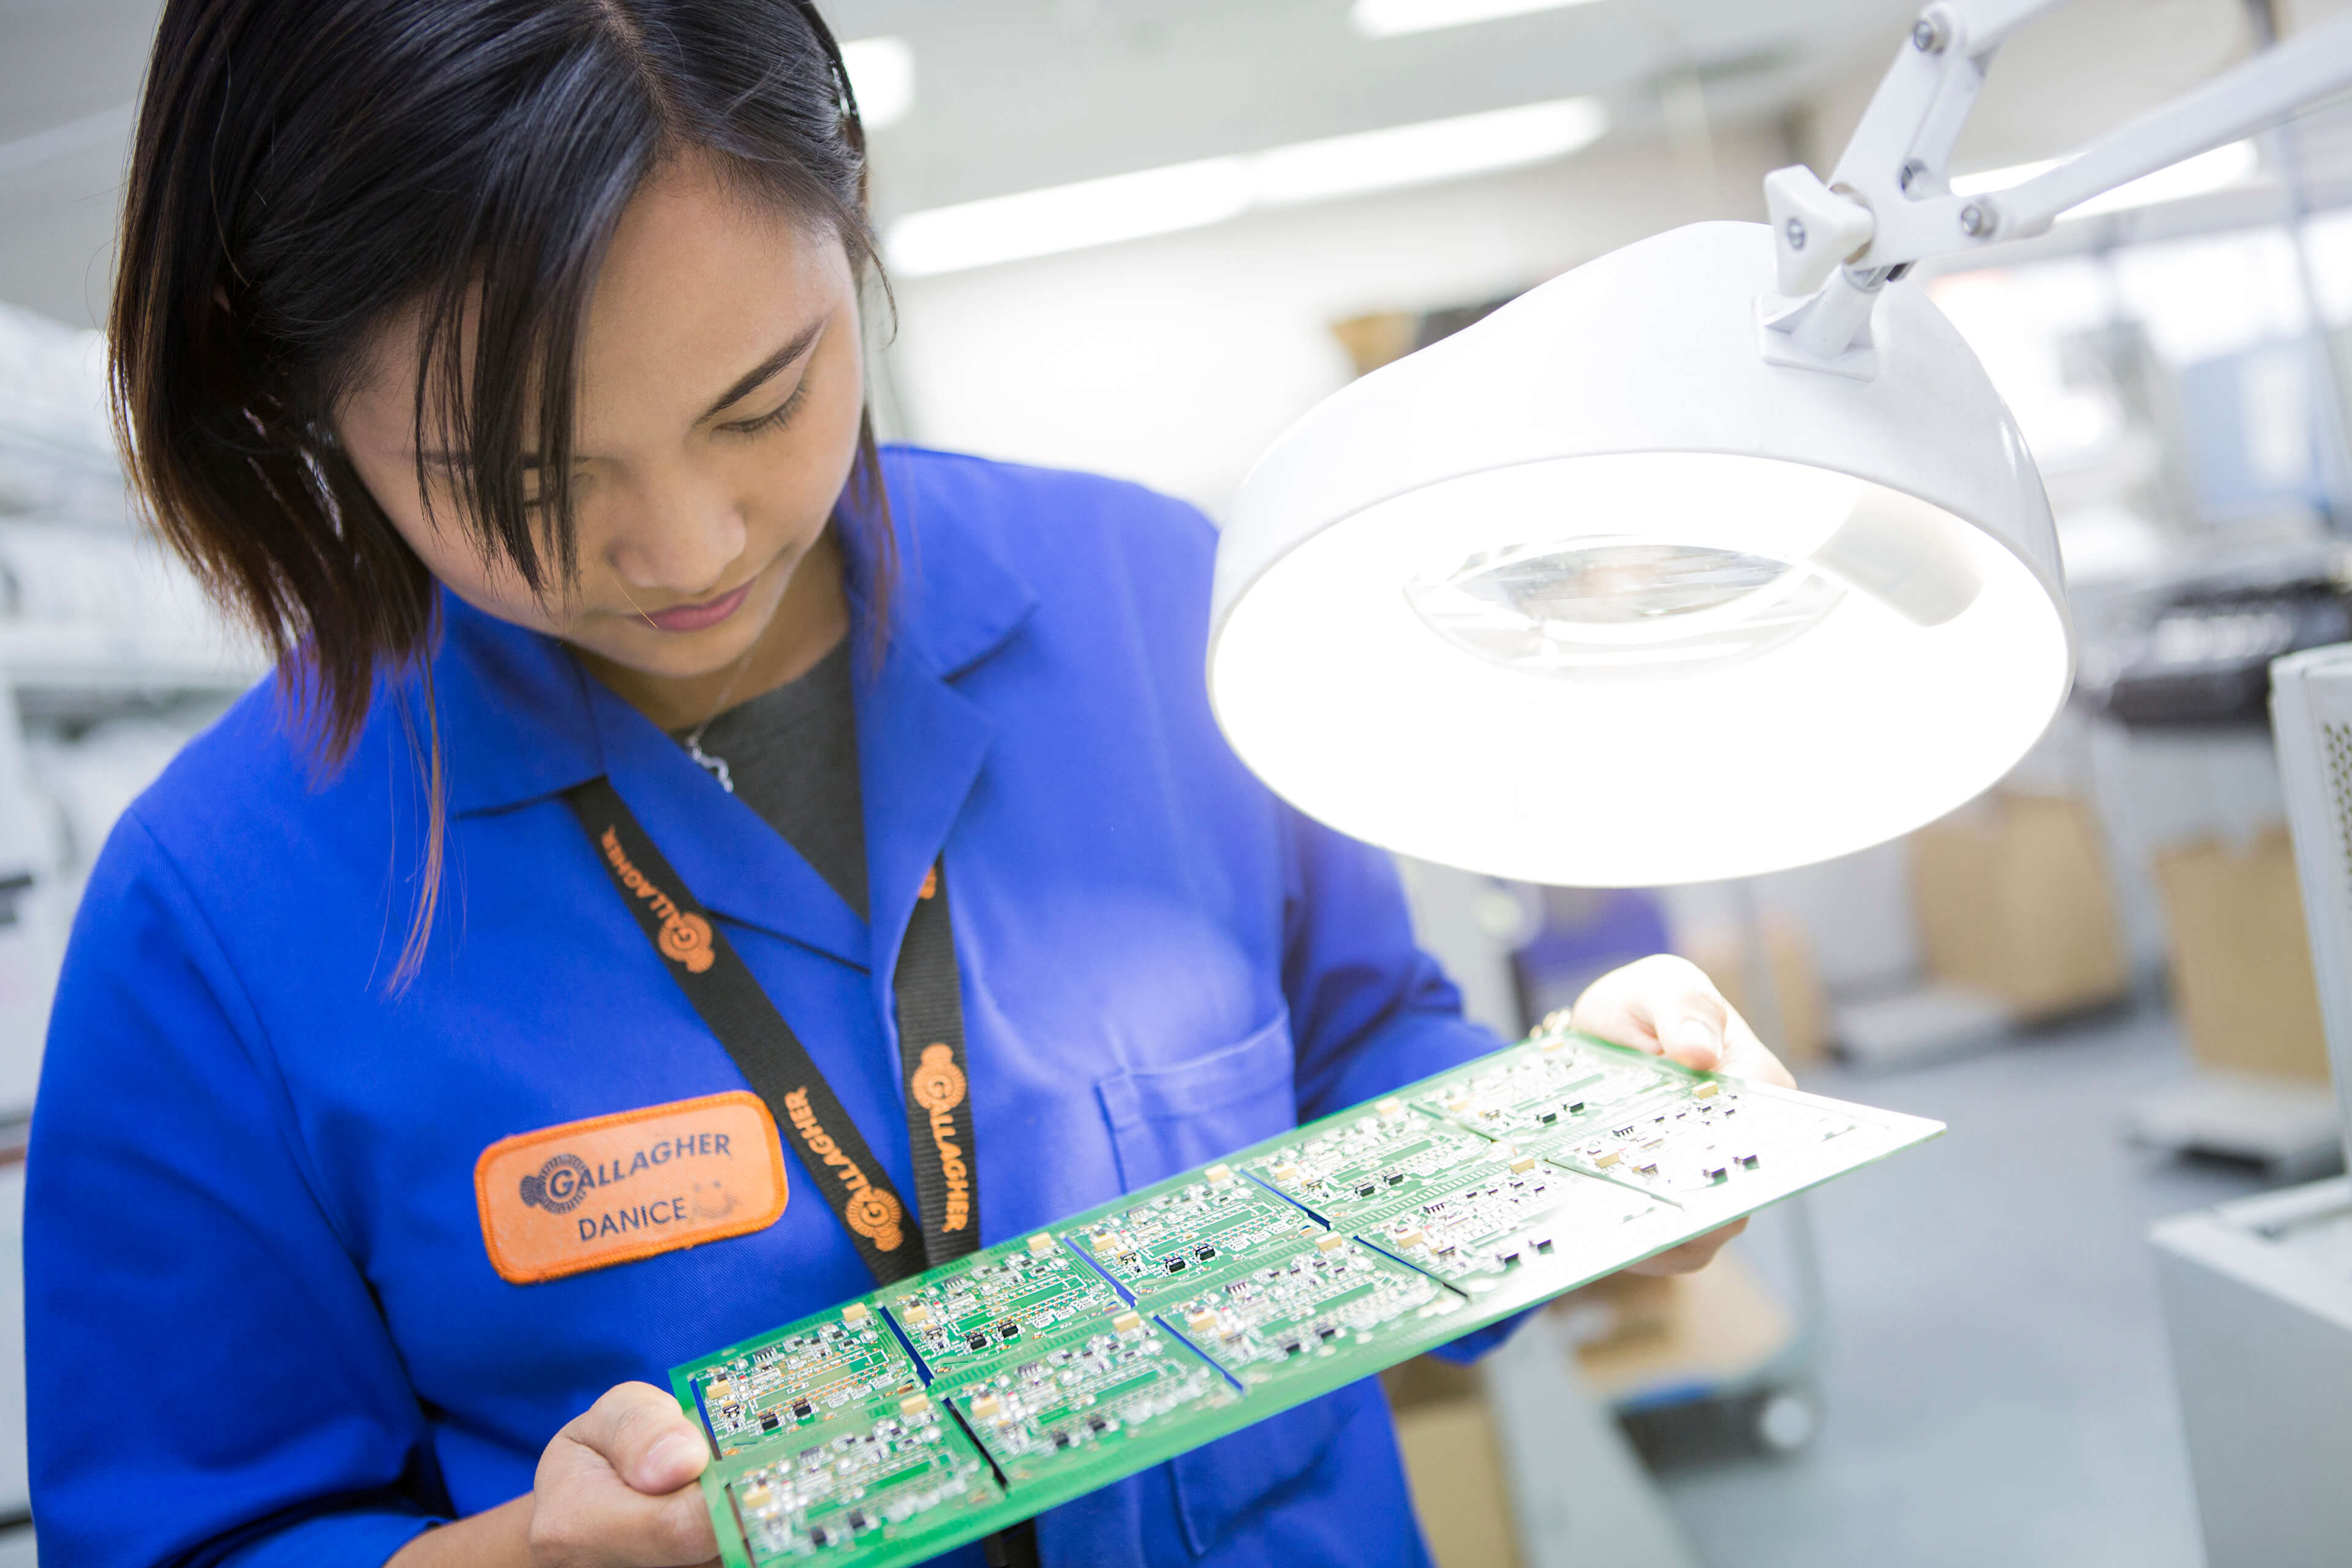 Woman examining motherboard in Gallagher's production facilities